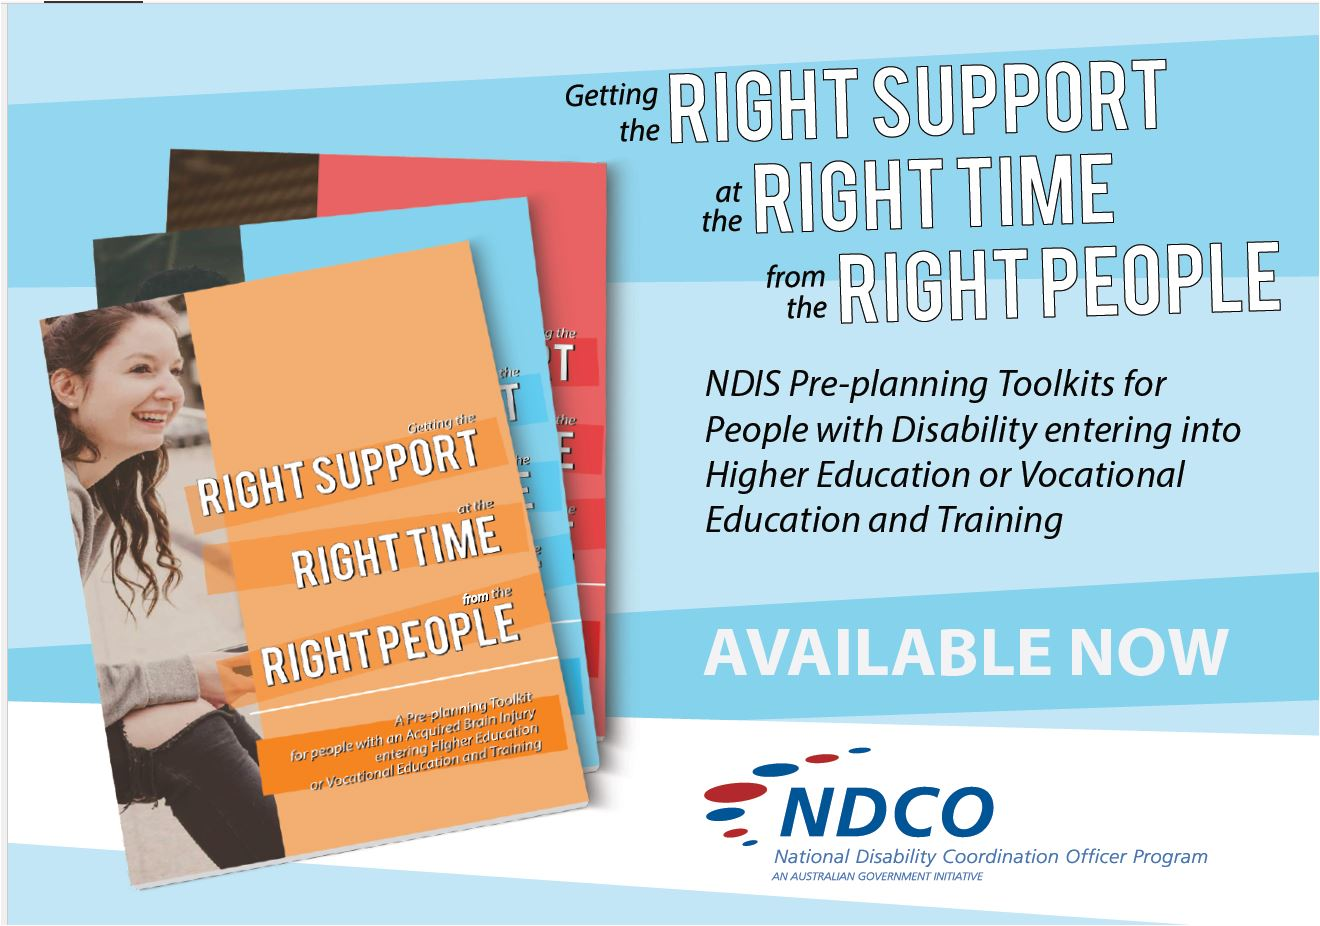 NDIS Pre-planning toolkit postcard image